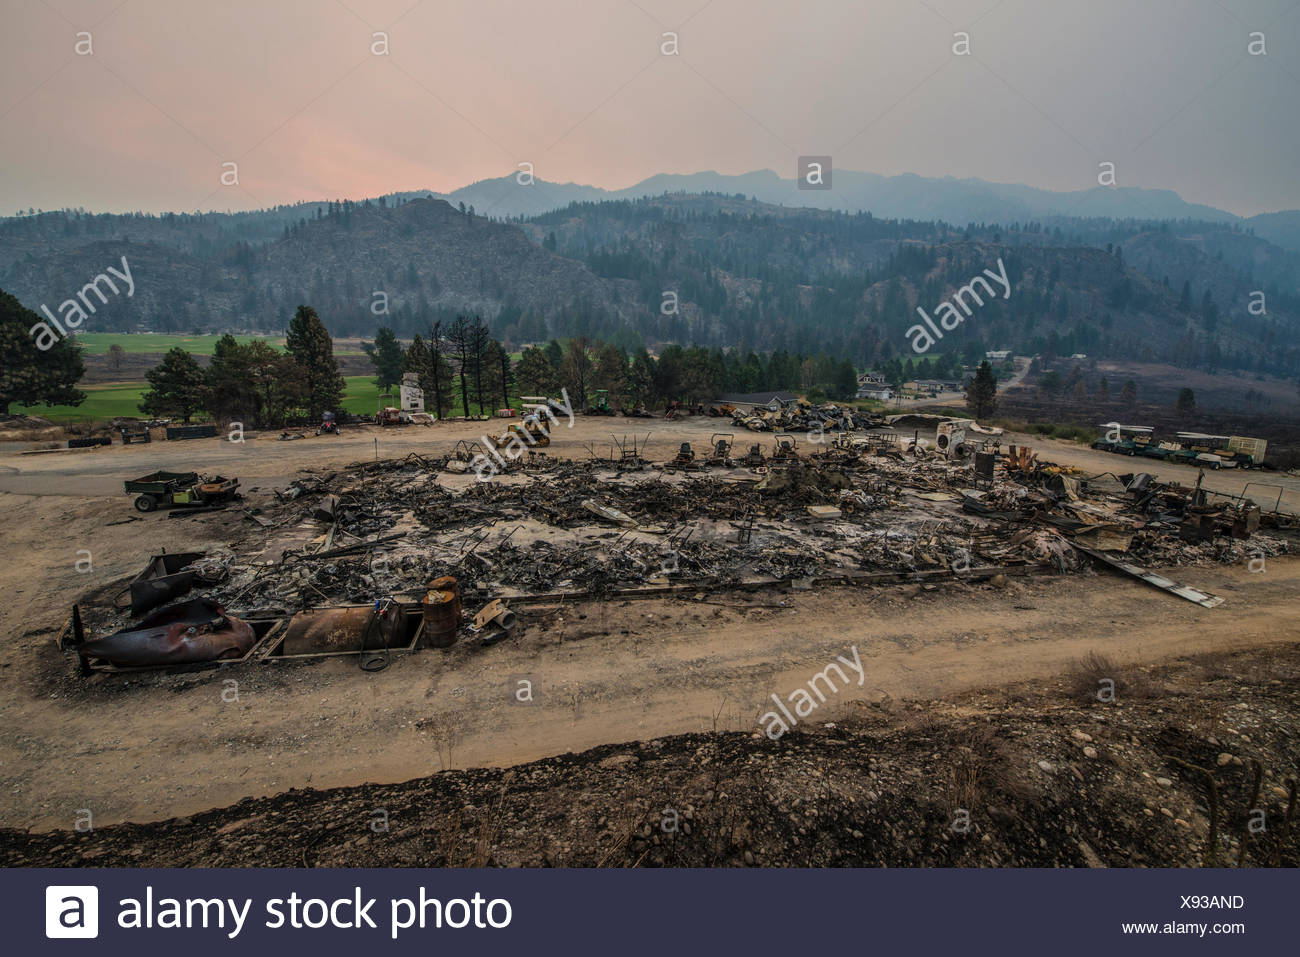 The remains of the Alta Lake golf course grounds keeping hut after a wildfire moved through the area. - Stock Image